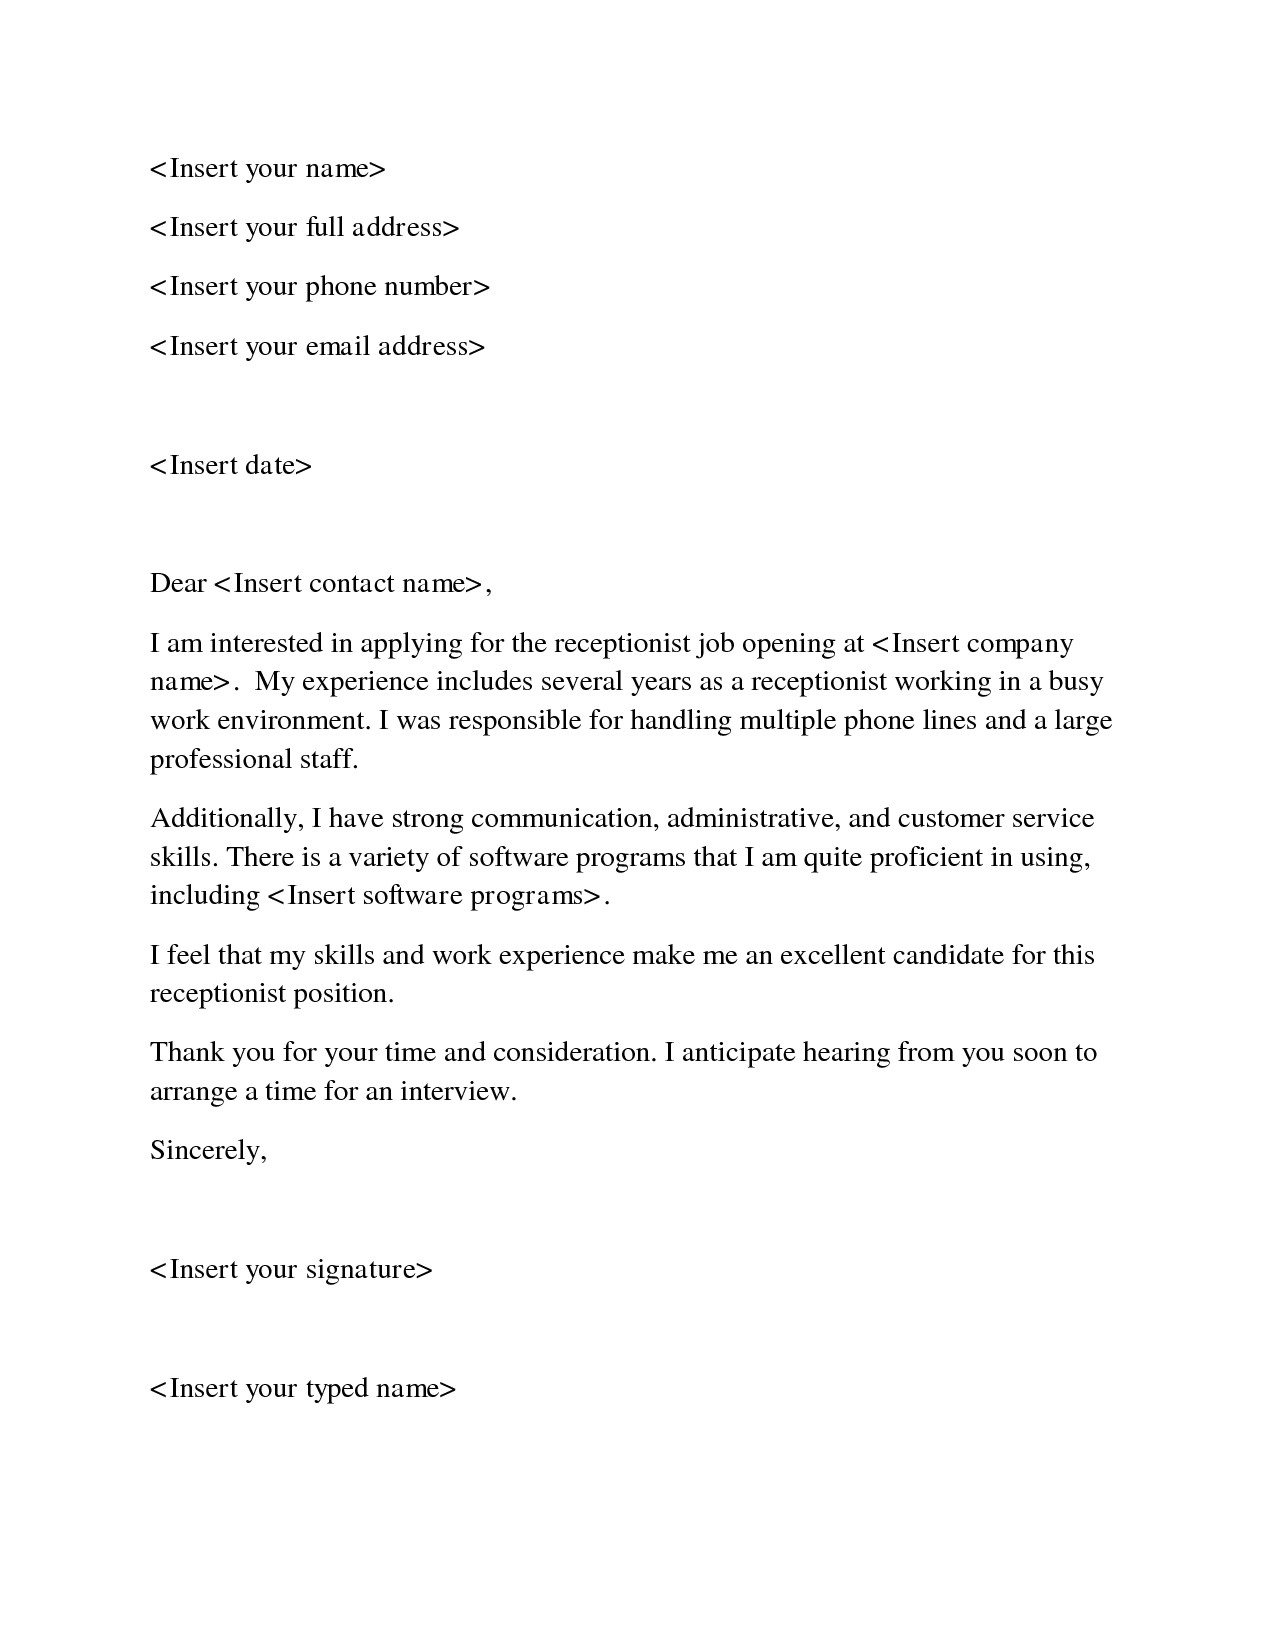 Example Of A Cover Letter for A Receptionist Cover Letter Help Receptionist Resume top Essay